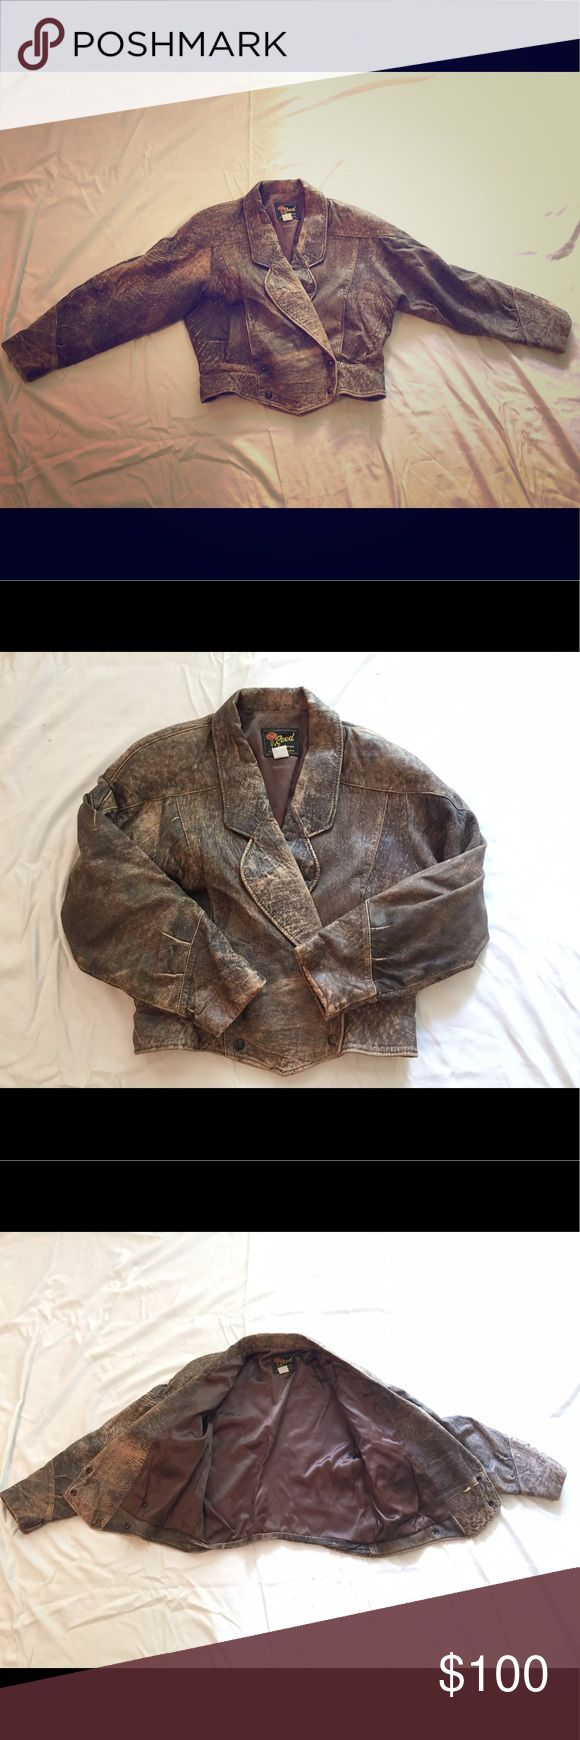 Vintage Soft Leather Bomber Jacket Beautiful brown distressed soft leather ladies vintage bomber jacket. Excellent condition. Reed Sportswear Jackets & Coats